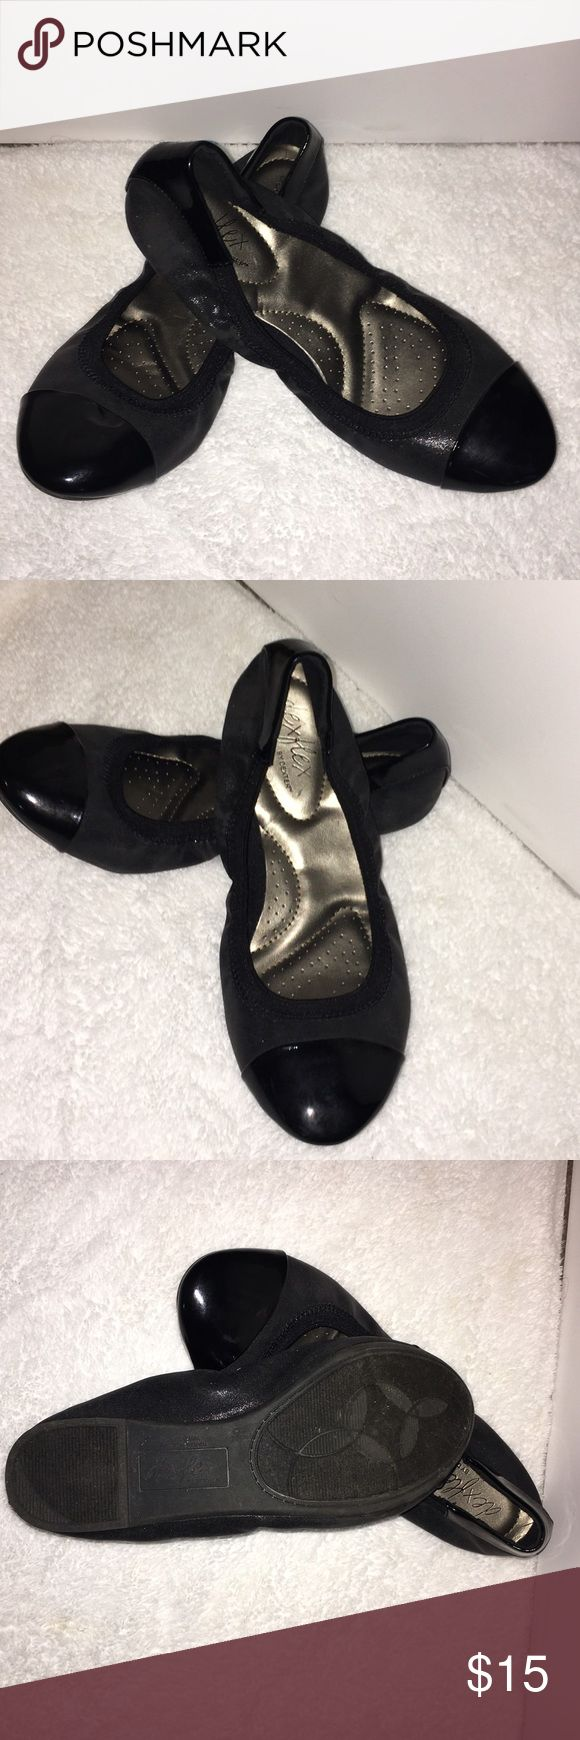 Dex flex flats Classy black flats with a shiny toe. In great condition only worn once and outgrew them. Shoes Flats & Loafers